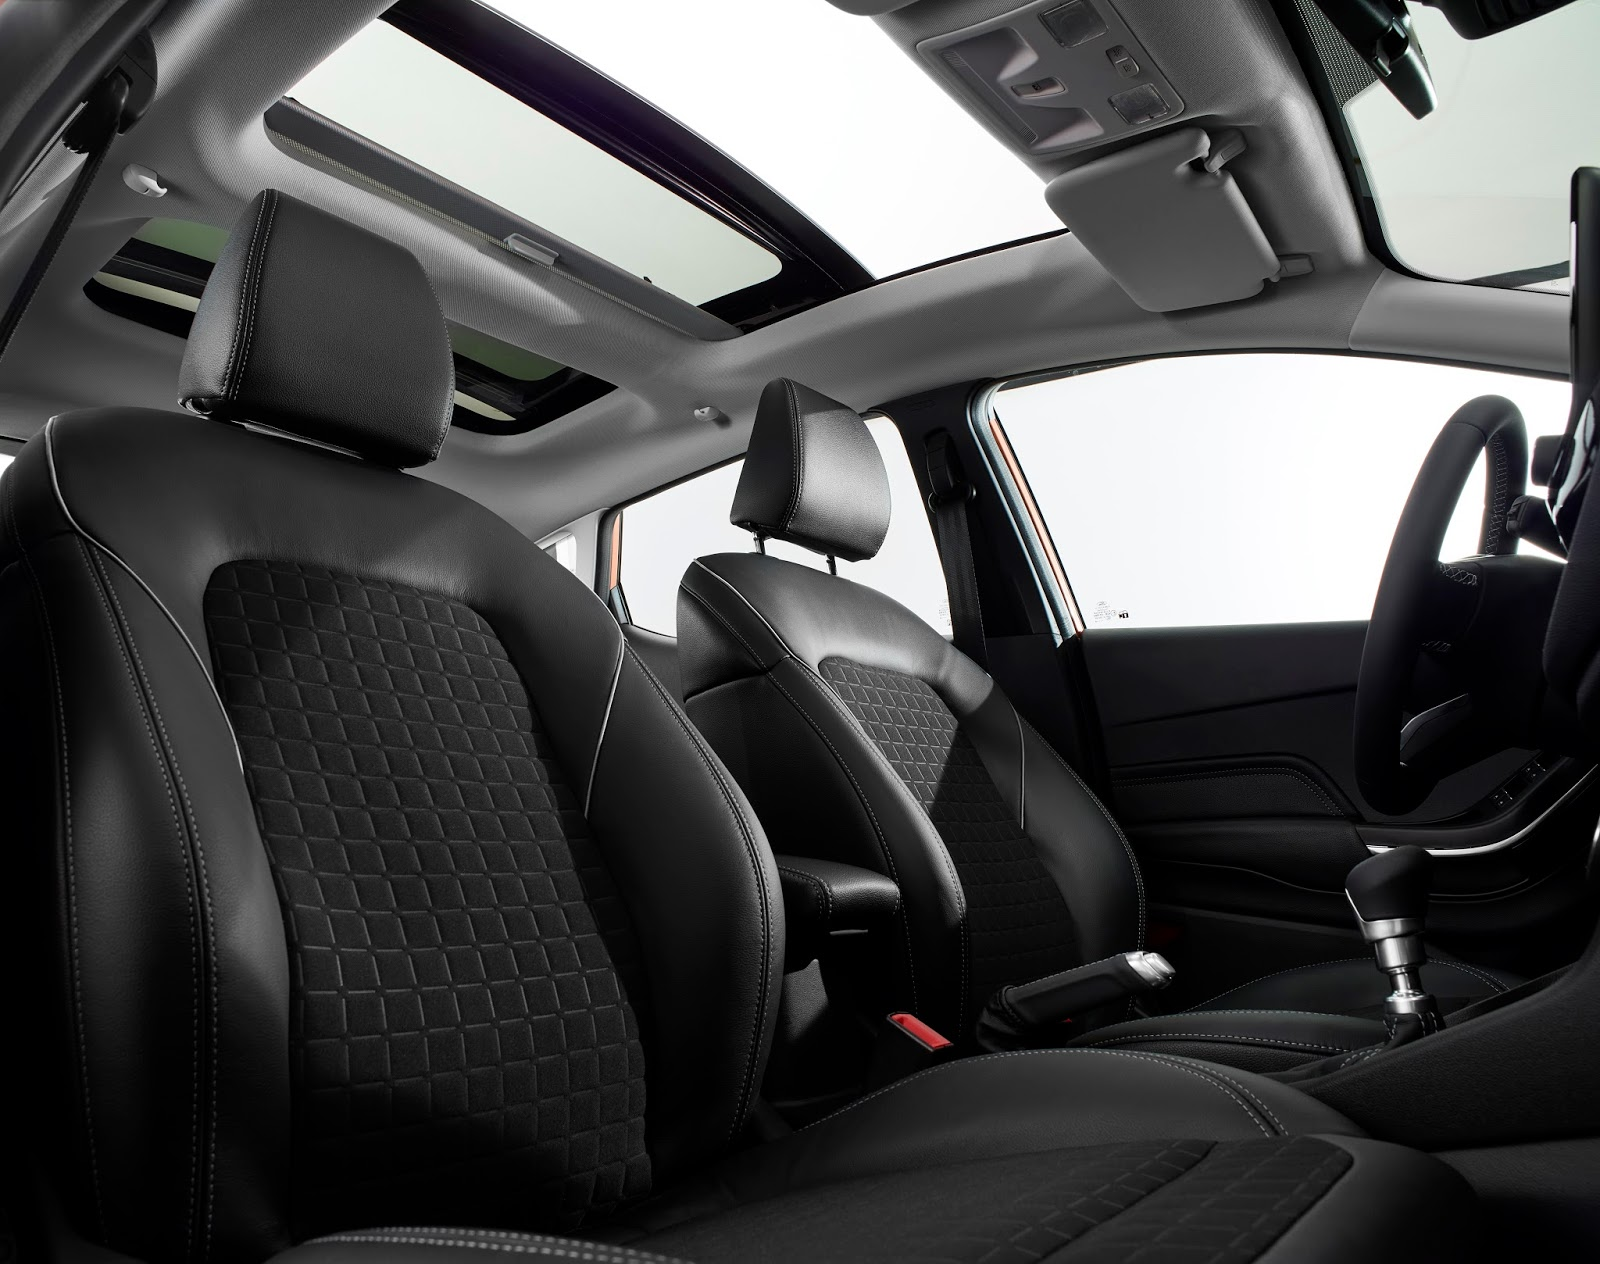 FORD FIESTA2016 TITANIUM FRONT SEAT ROW PANORAMIC ROOF 05 Τα πρώτα Ford Fiesta έρχονται στην Ελλάδα, με τιμή από 12.990€ Bestseller, Ford, Ford Fiesta, supermini, Λανσάρισμα